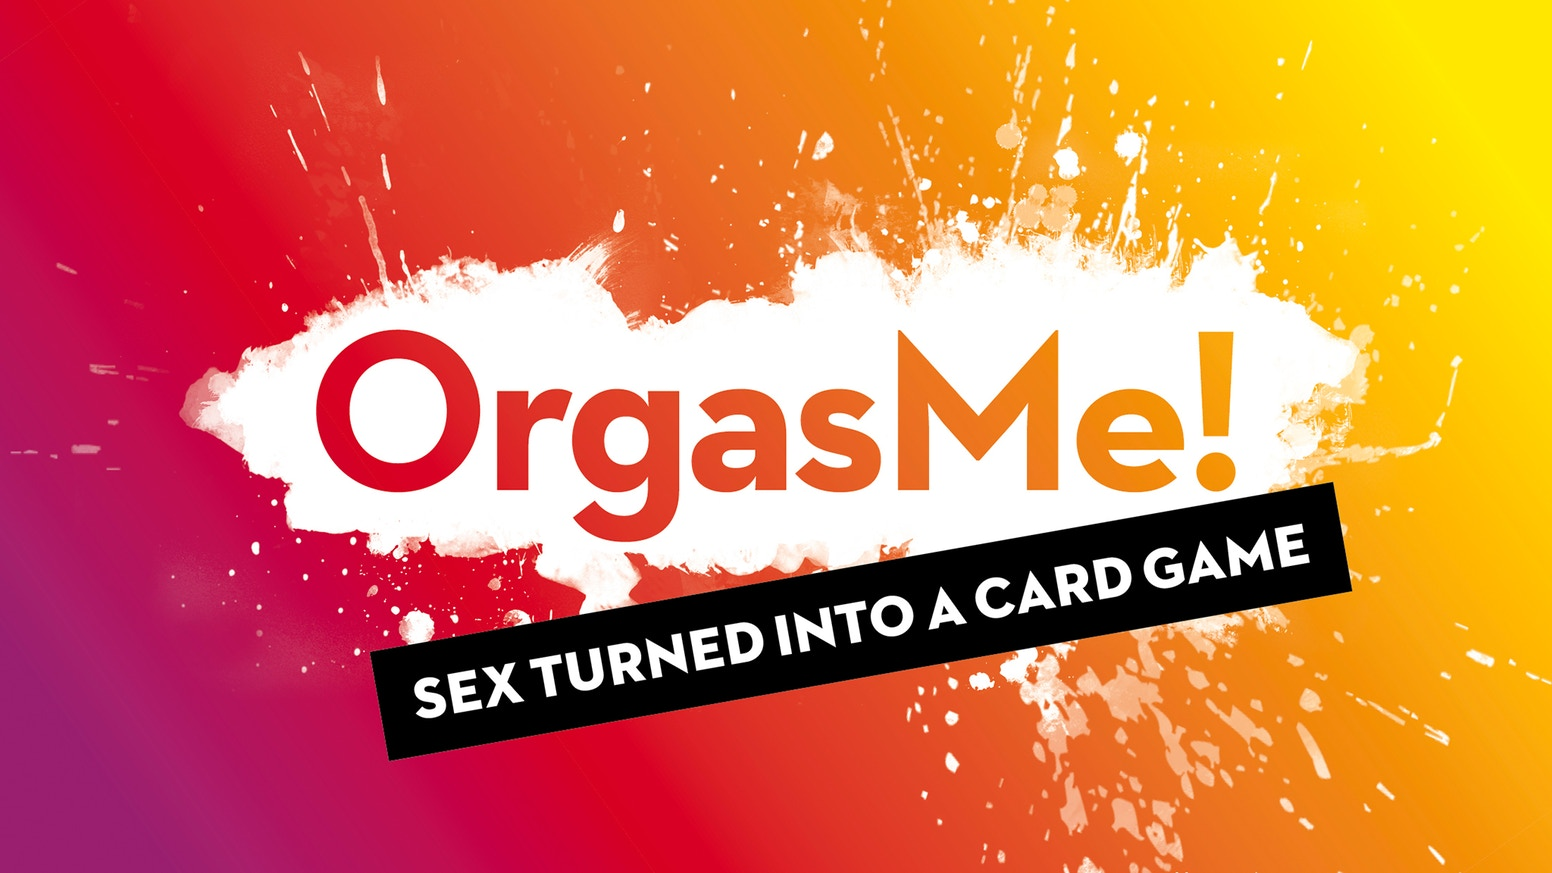 OrgasMe! is sex turned into a hilarious card game with a twist: The first one having an orgasm loses the game. For 2-6 naughty players.